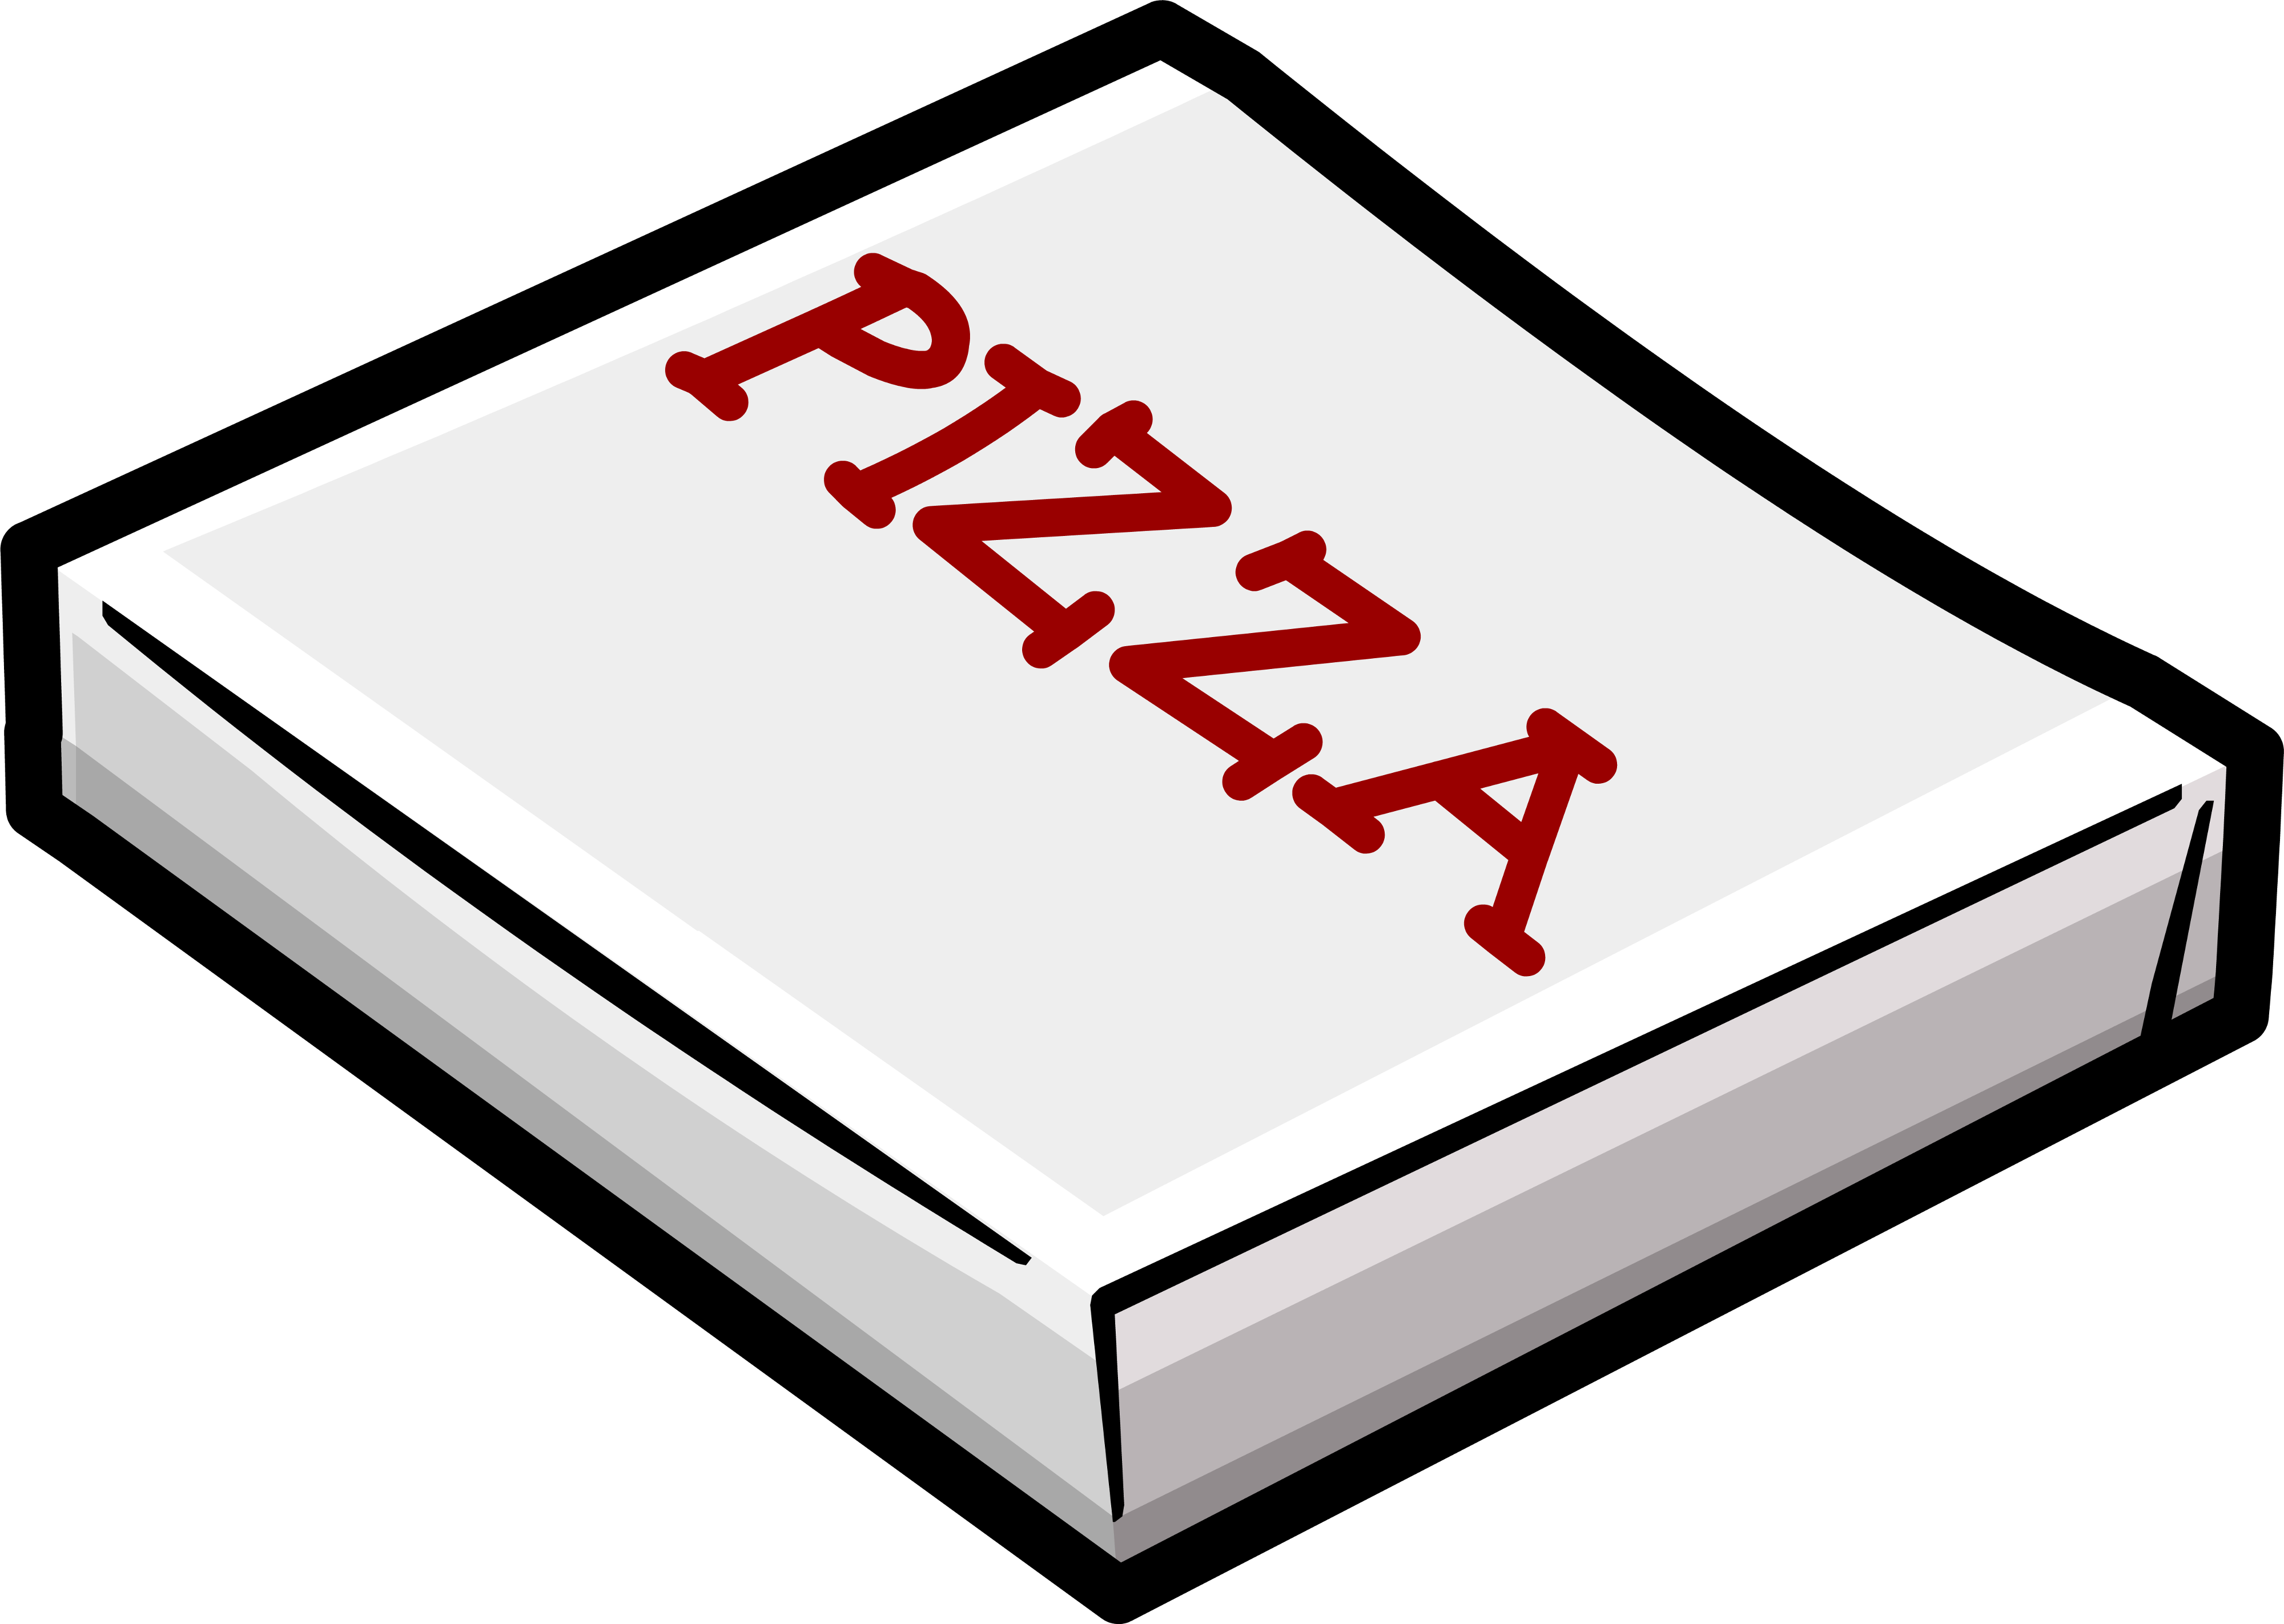 club clipart pizza